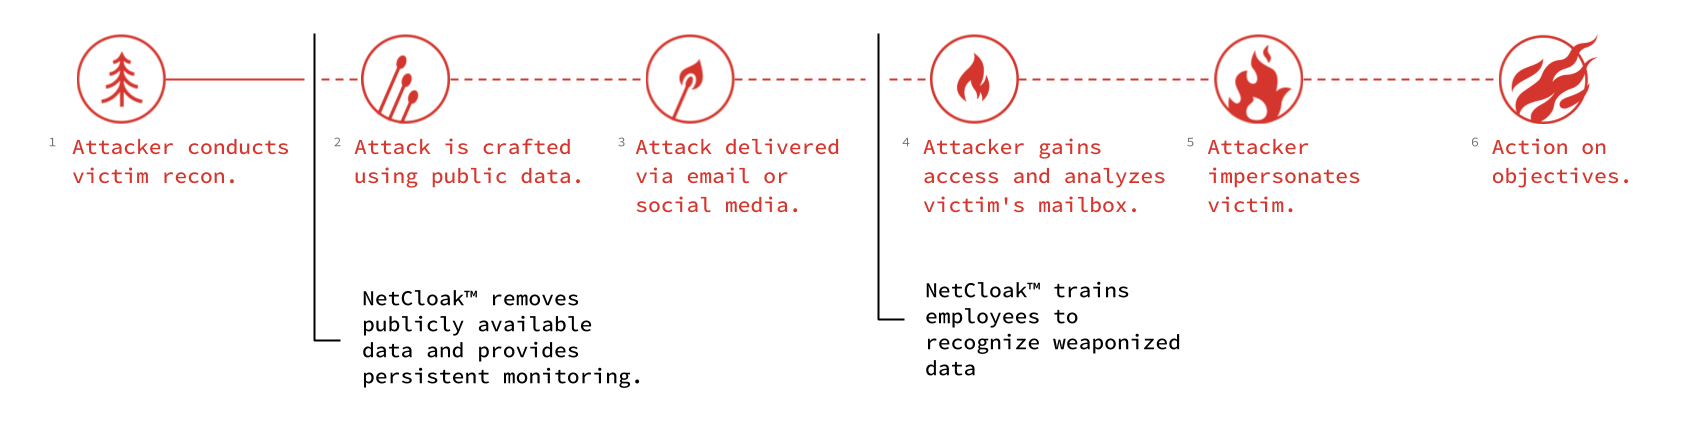 Attacker Lifecycle.png